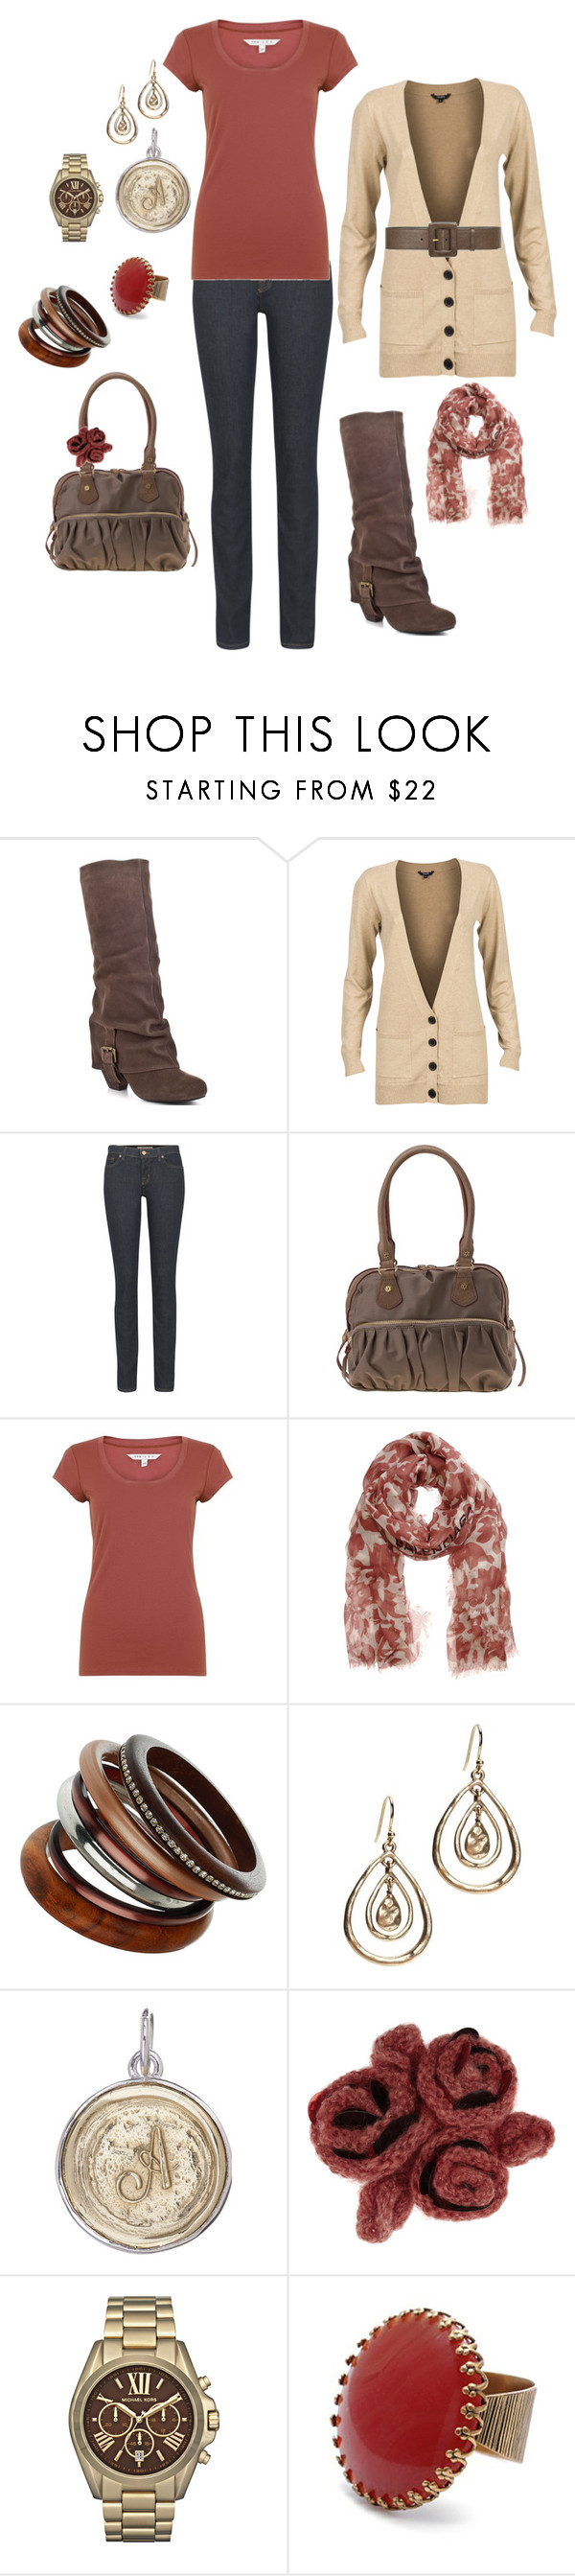 """""""Brown and rose"""" by kristen-344 ❤ liked on Polyvore featuring Naughty Monkey, mbyM, J Brand, Yves Saint Laurent, kew.159, Balenciaga, Wallis, Lucky Brand, Waxing Poetic and Missoni"""